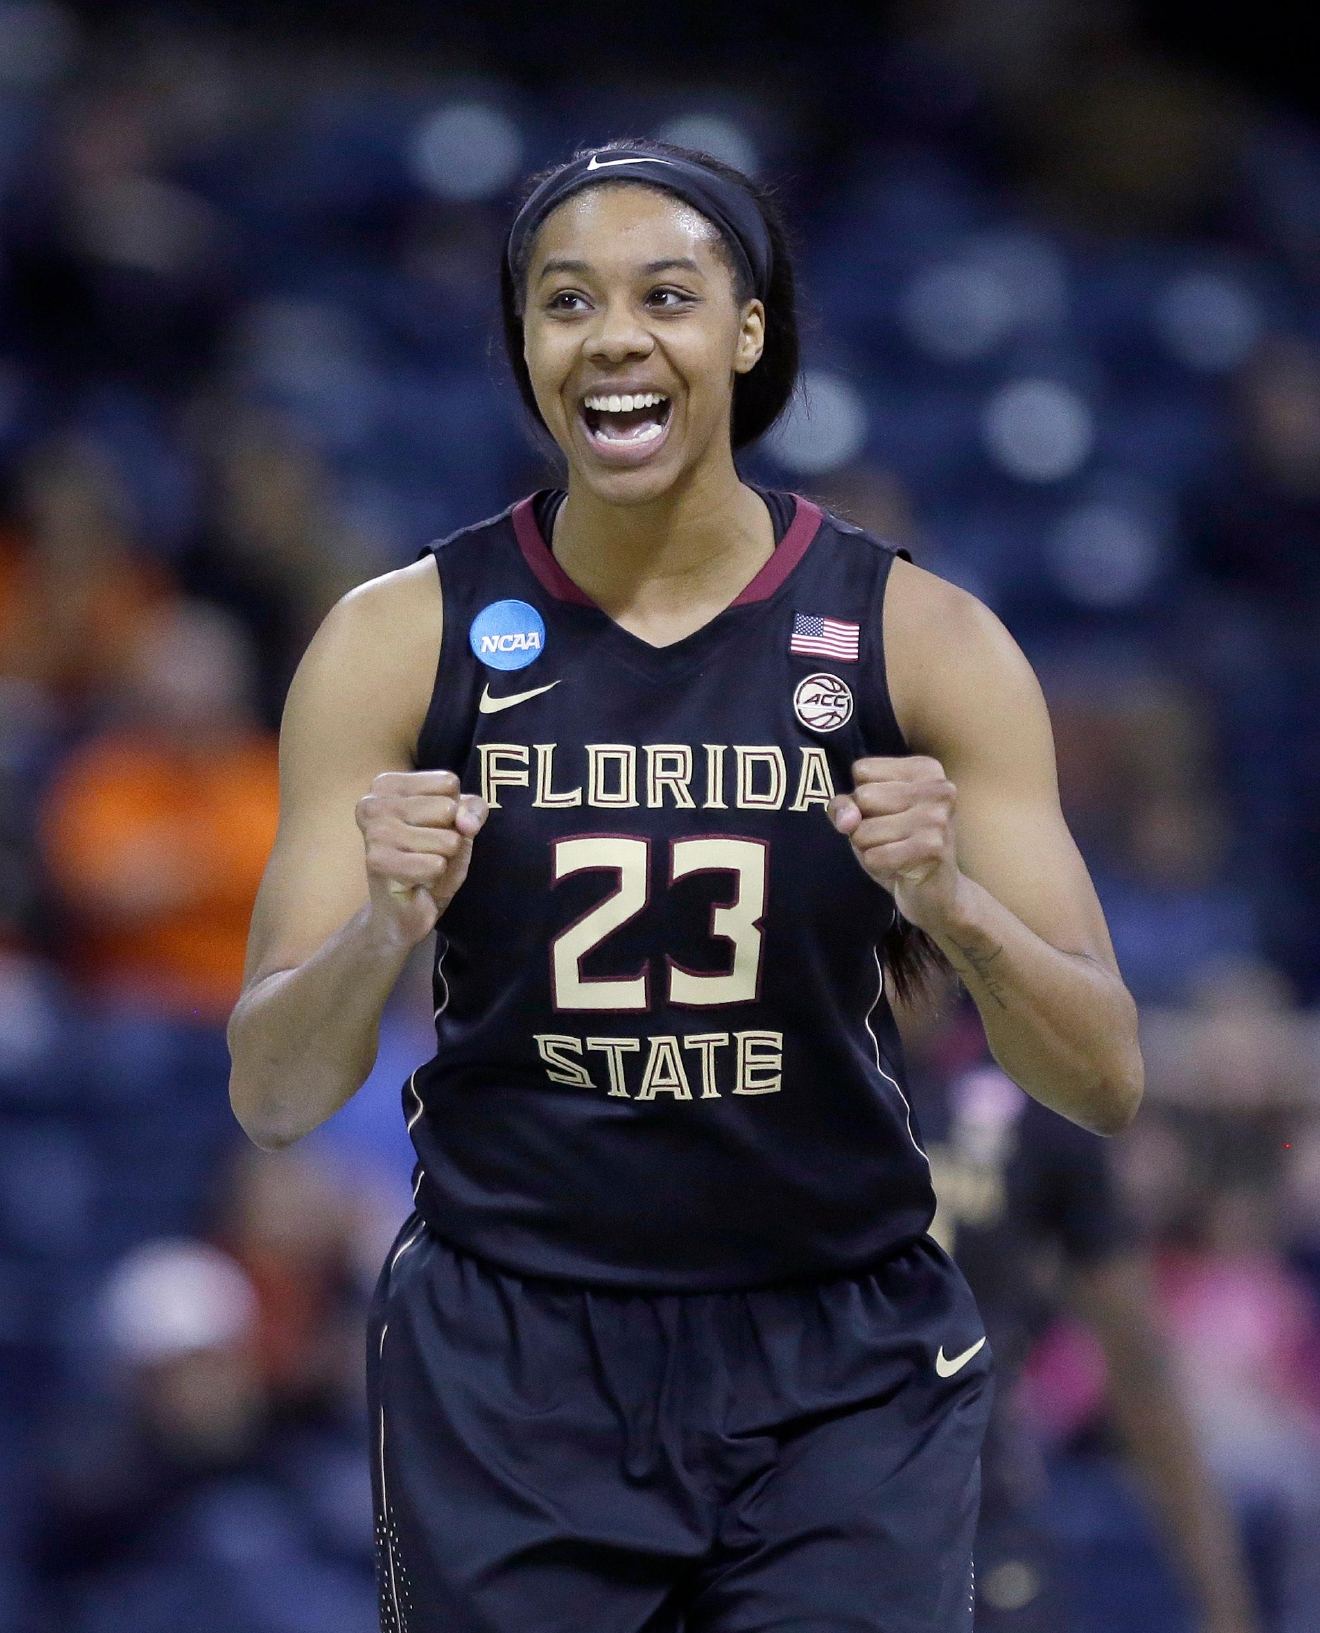 Florida State forward Ivey Slaughter smiles after scoring against Oregon State during the second half of a regional semi-final round game of an NCAA college basketball tournament, Saturday, March 25, 2017, in Stockton, Calif. Florida State won 66-53. (AP Photo/Rich Pedroncelli)